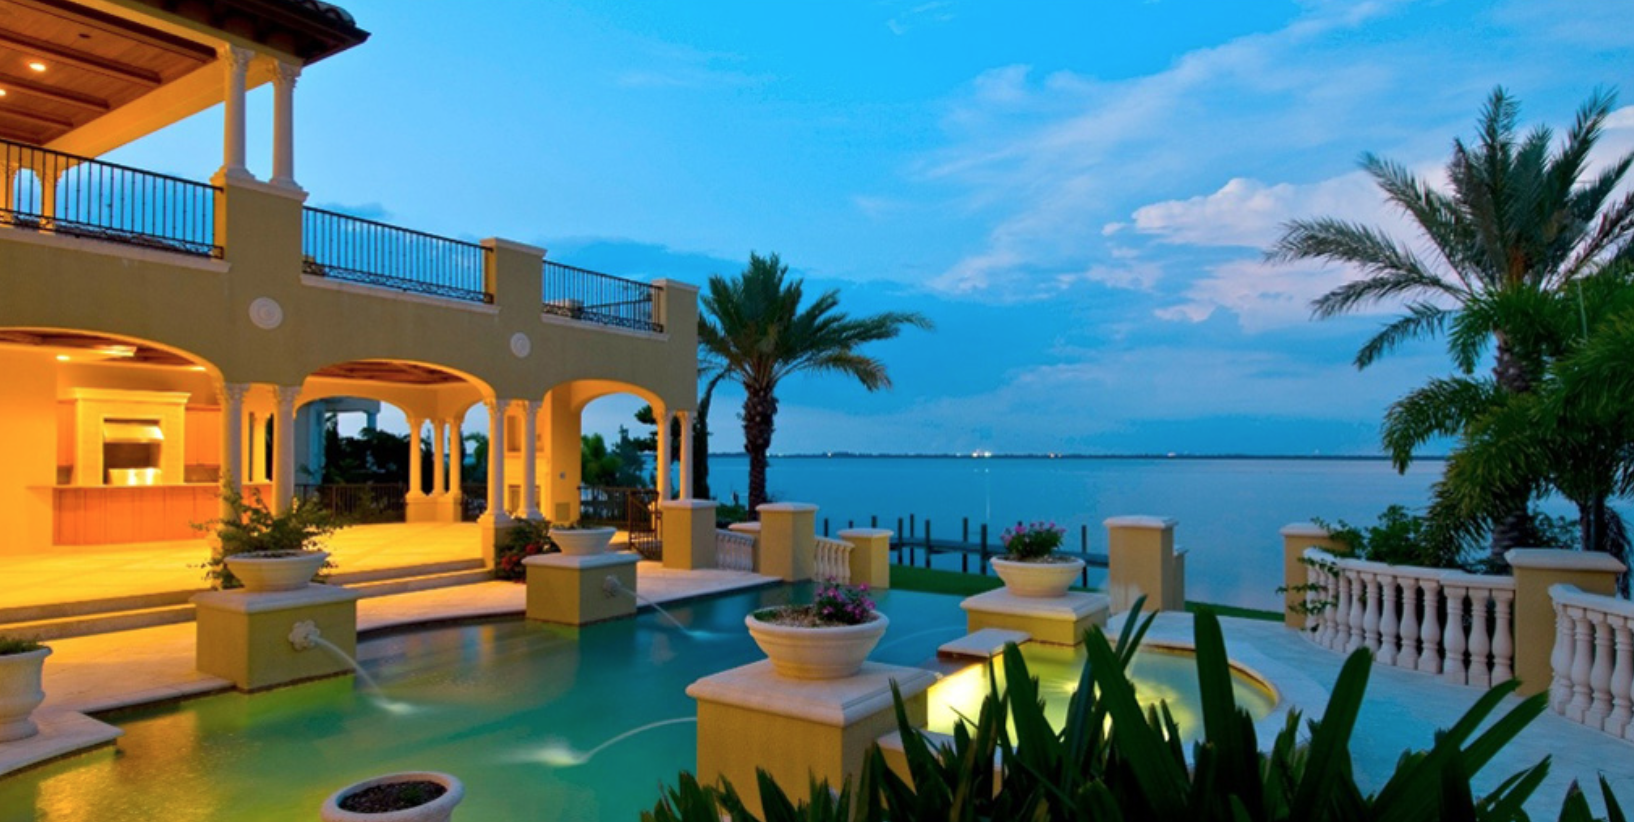 Miami beach waterfront homes soaring demand sky five properties - House on beach pix ...